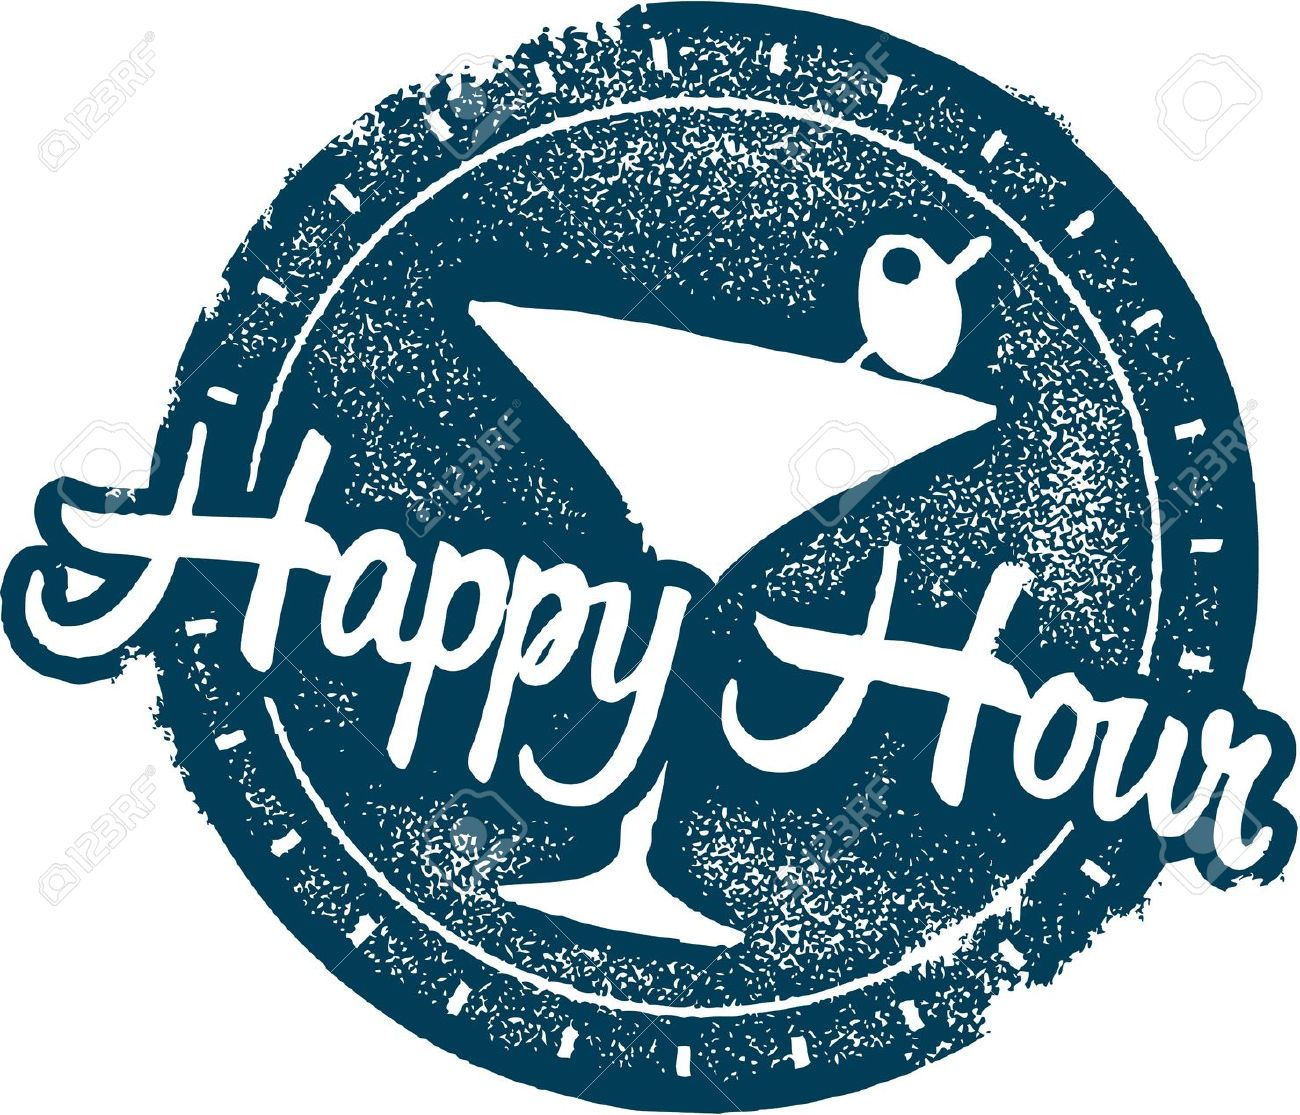 Free Cocktail Hour Cliparts, Download Free Clip Art, Free.